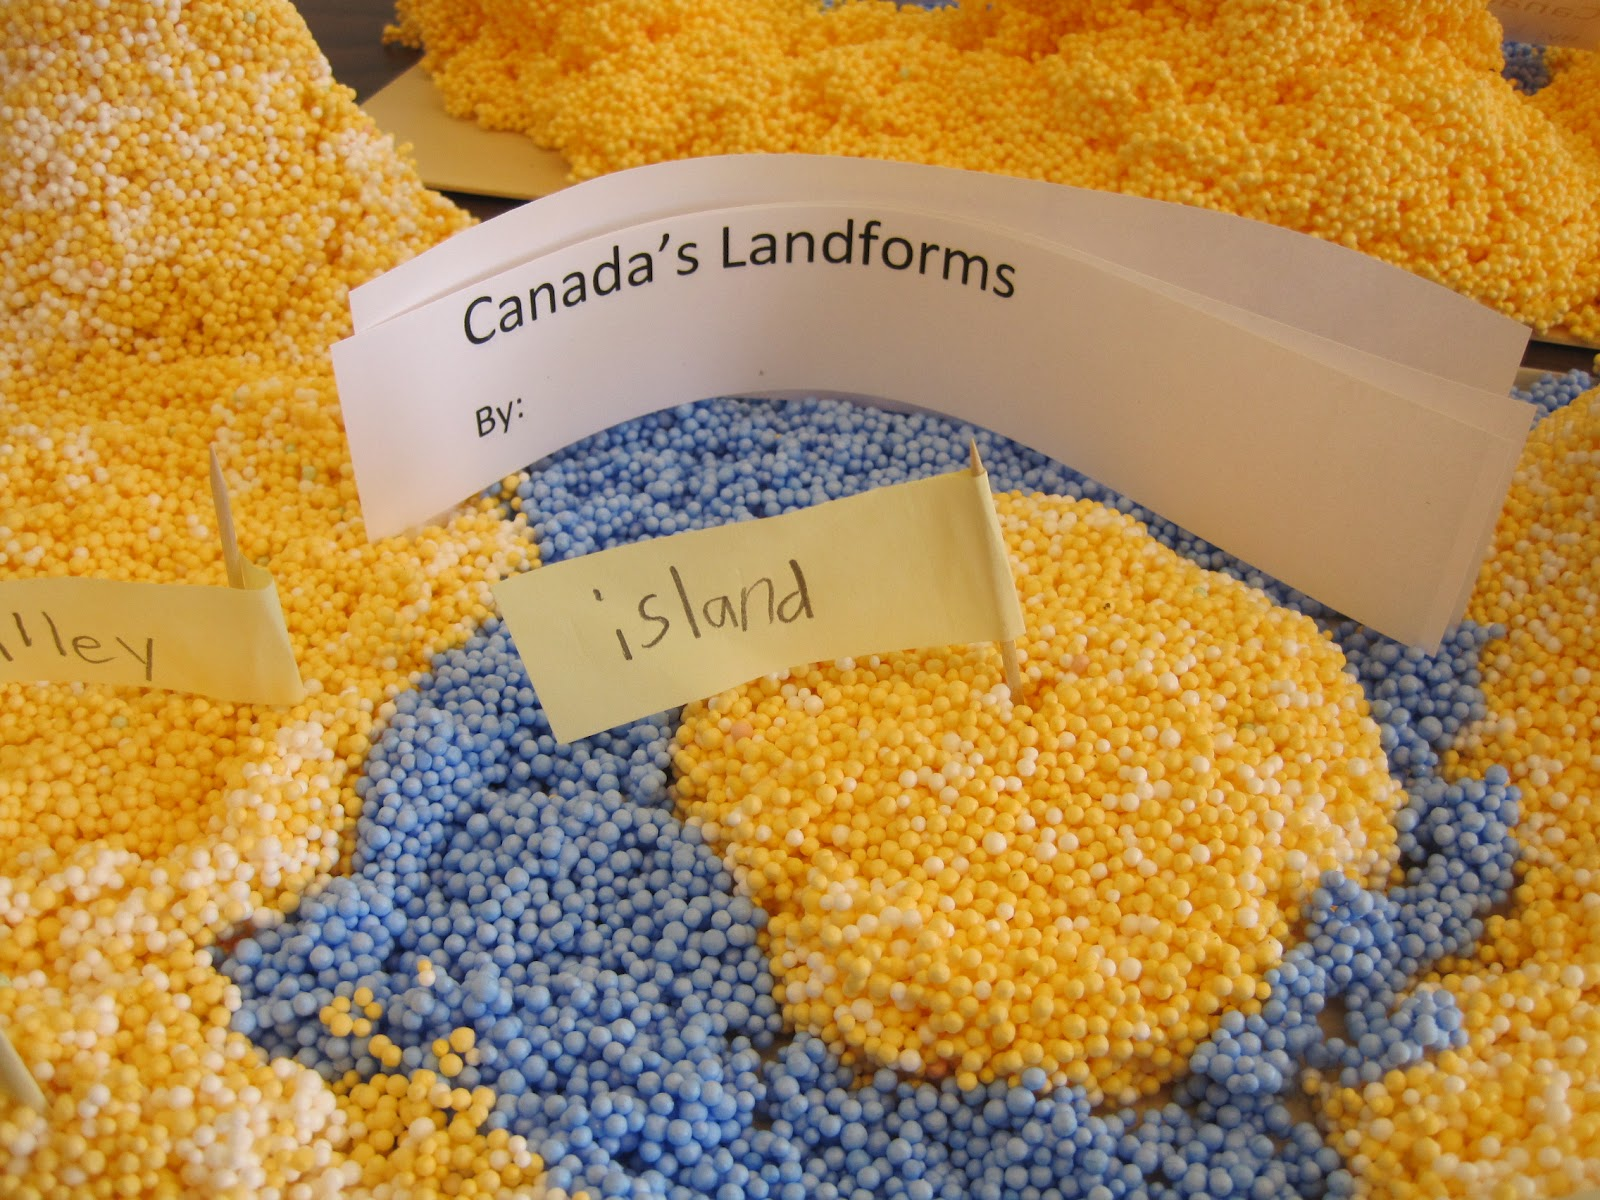 We have been learning about canada. today we made some landforms like